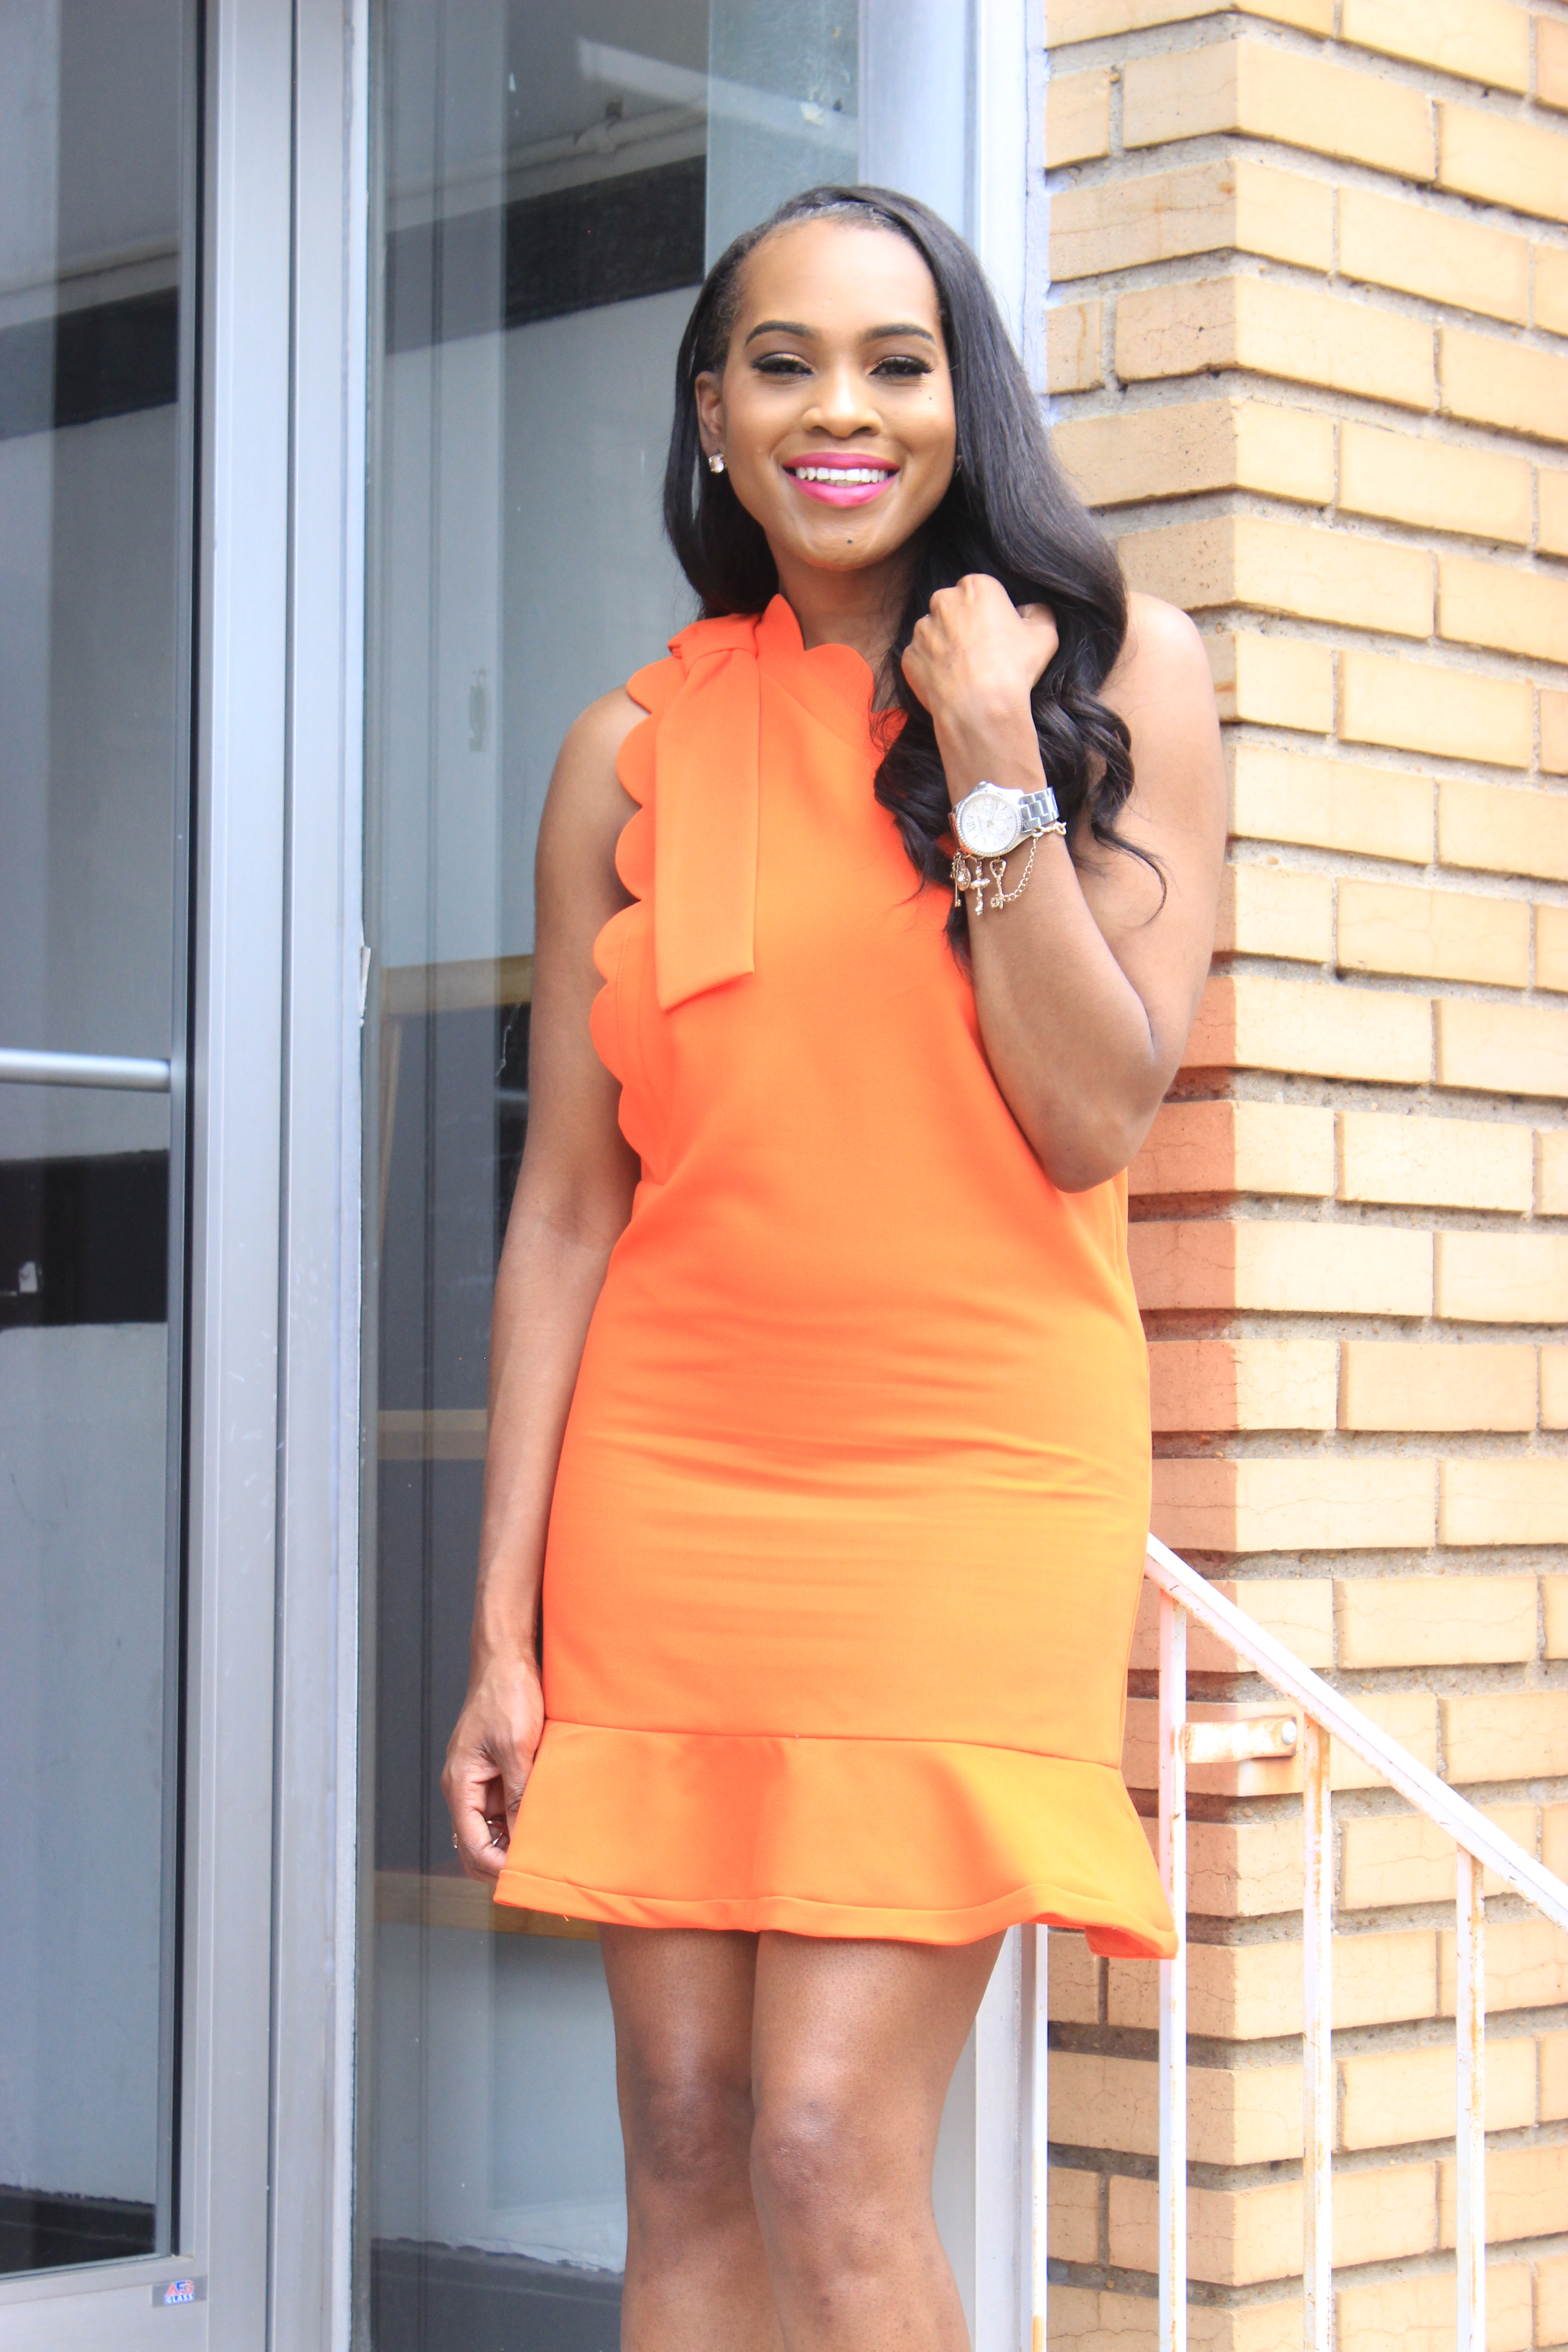 Style-Files-Orange-One Shoulder Dress-with-Bow and-Scallop-Trim-Victoria Beckham-for-Target-How-to-wear-victoria-beckham-for-target-Victoria-Beckham-for-Target-Review-Justfab-orange-kati-ankle-strap-sandals-oohlalablog-2